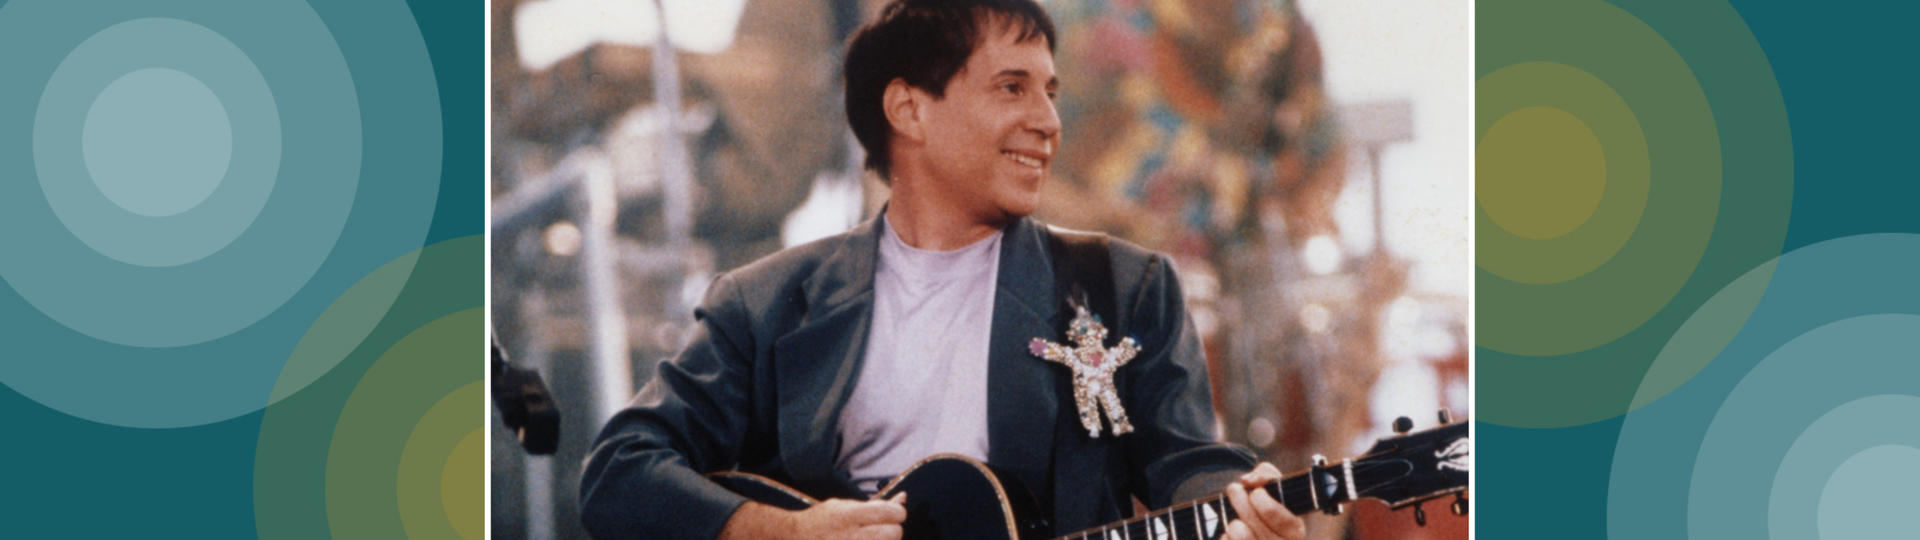 paul simon exhibition